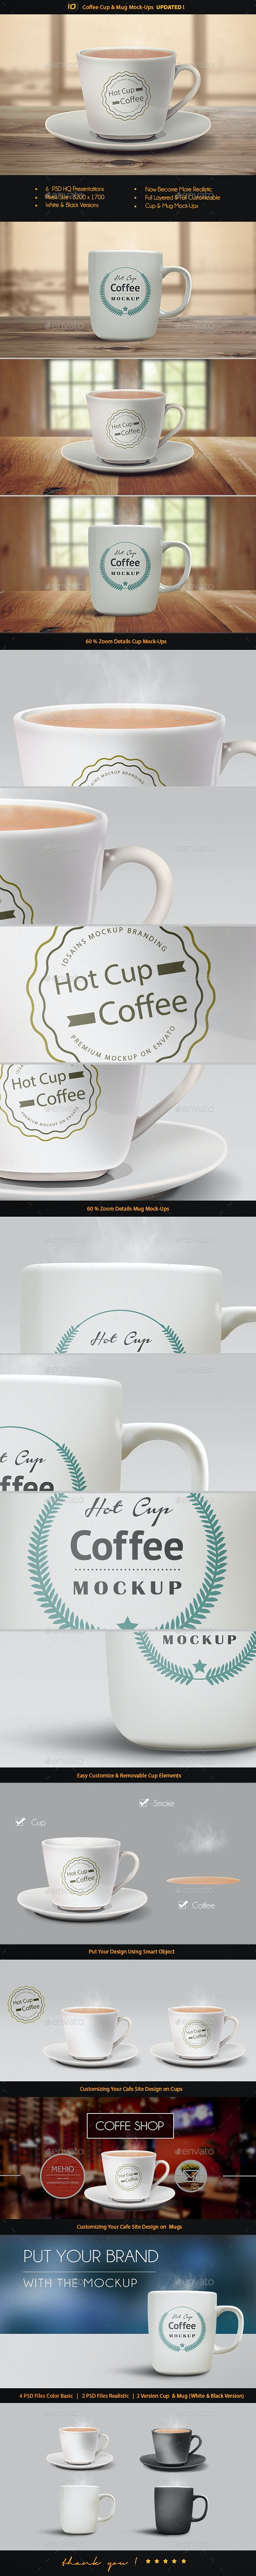 Realistic Cup & Mug Mock-Up - Food and Drink Packaging